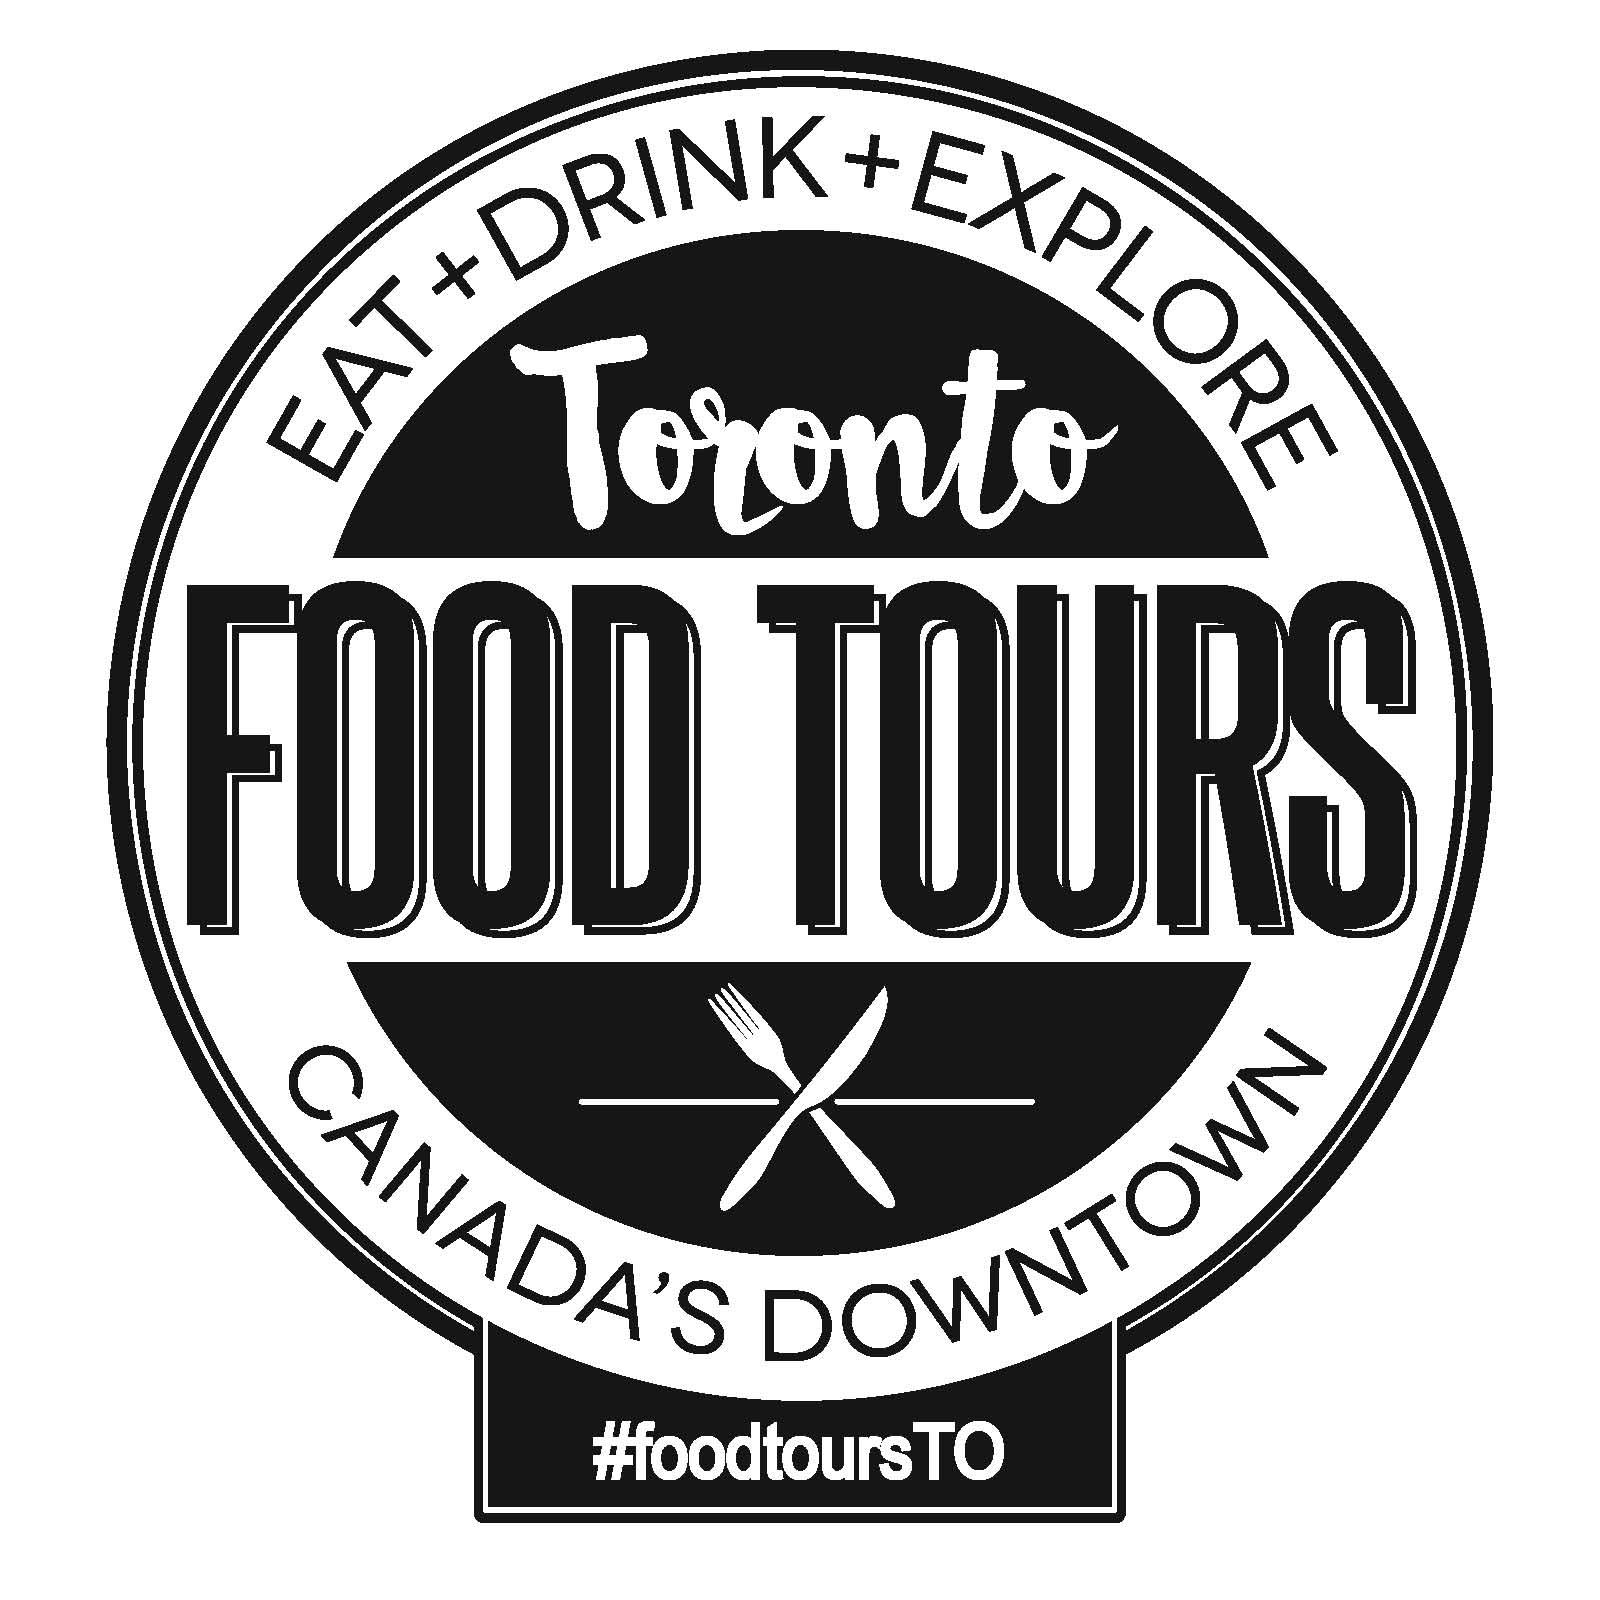 Toronto Food Tours - Discover Chef Scott's Toronto